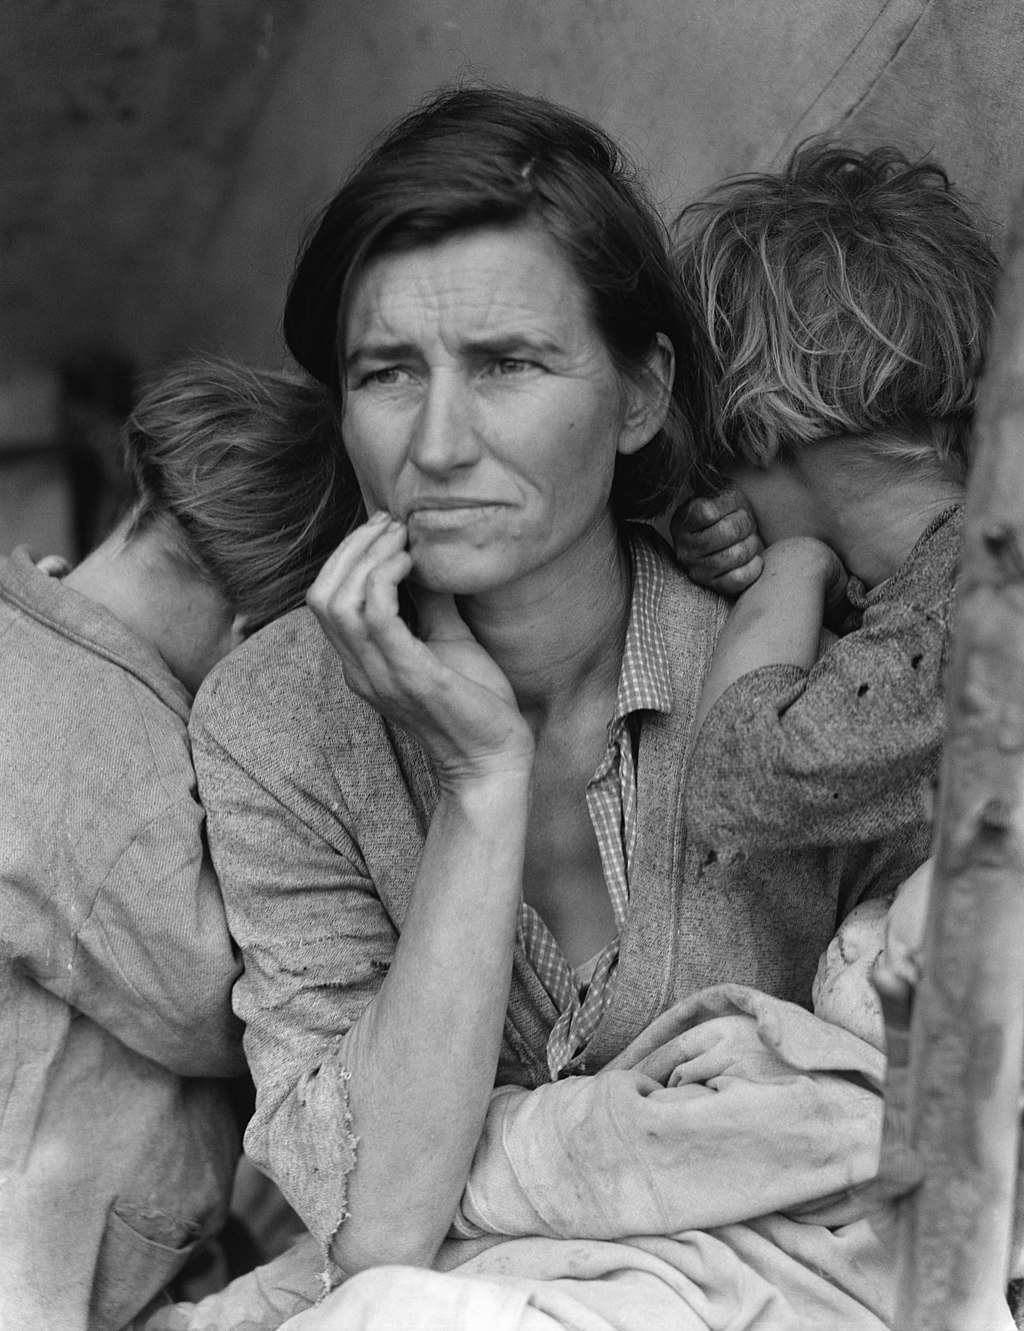 A destitute American family in the 1930s.